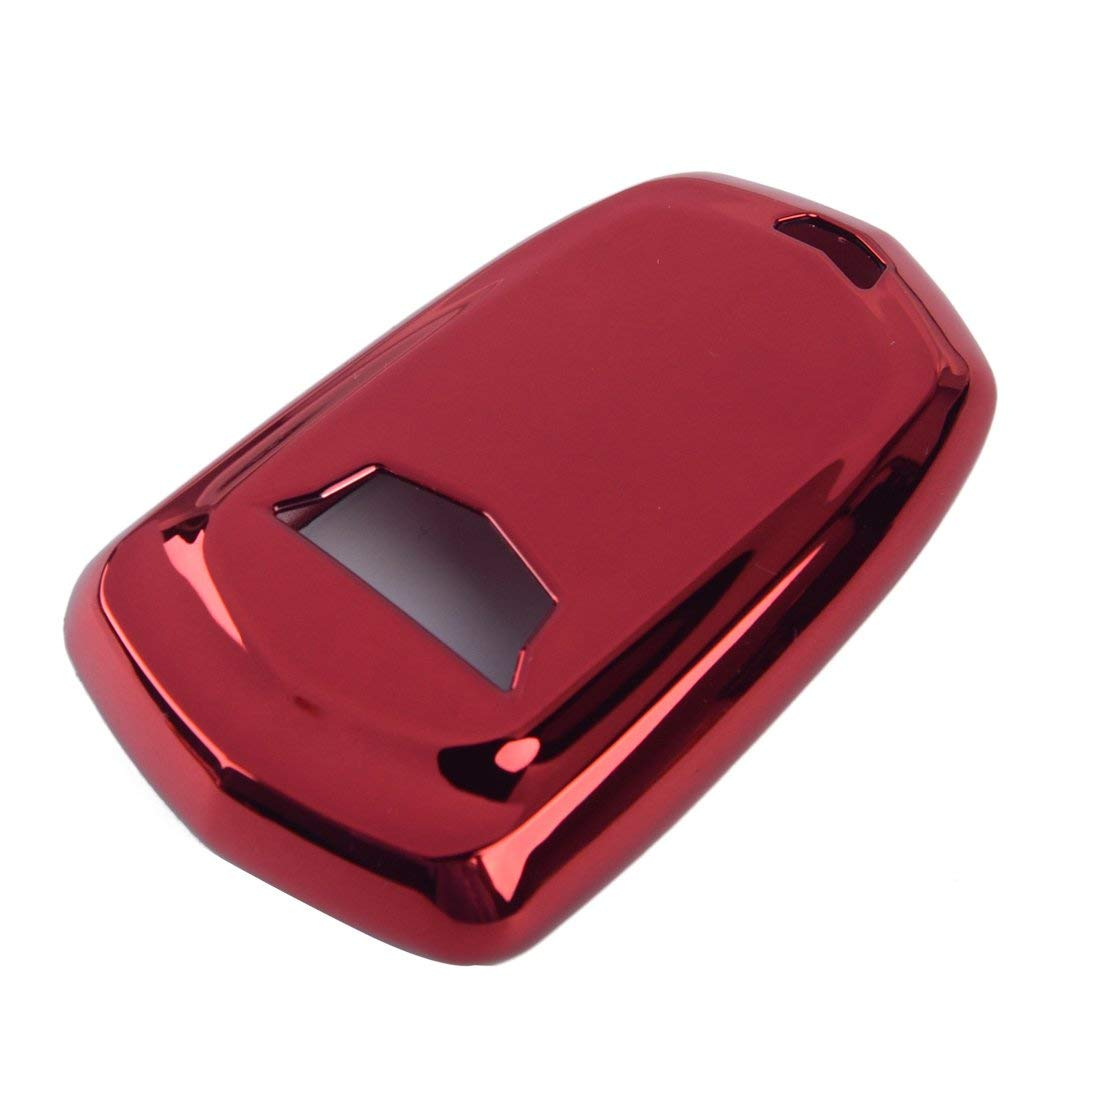 CITALL TPU remote control smart key cover FOB housing Fit for Cadillac Escalade ATS-L CT6 CTS DTS